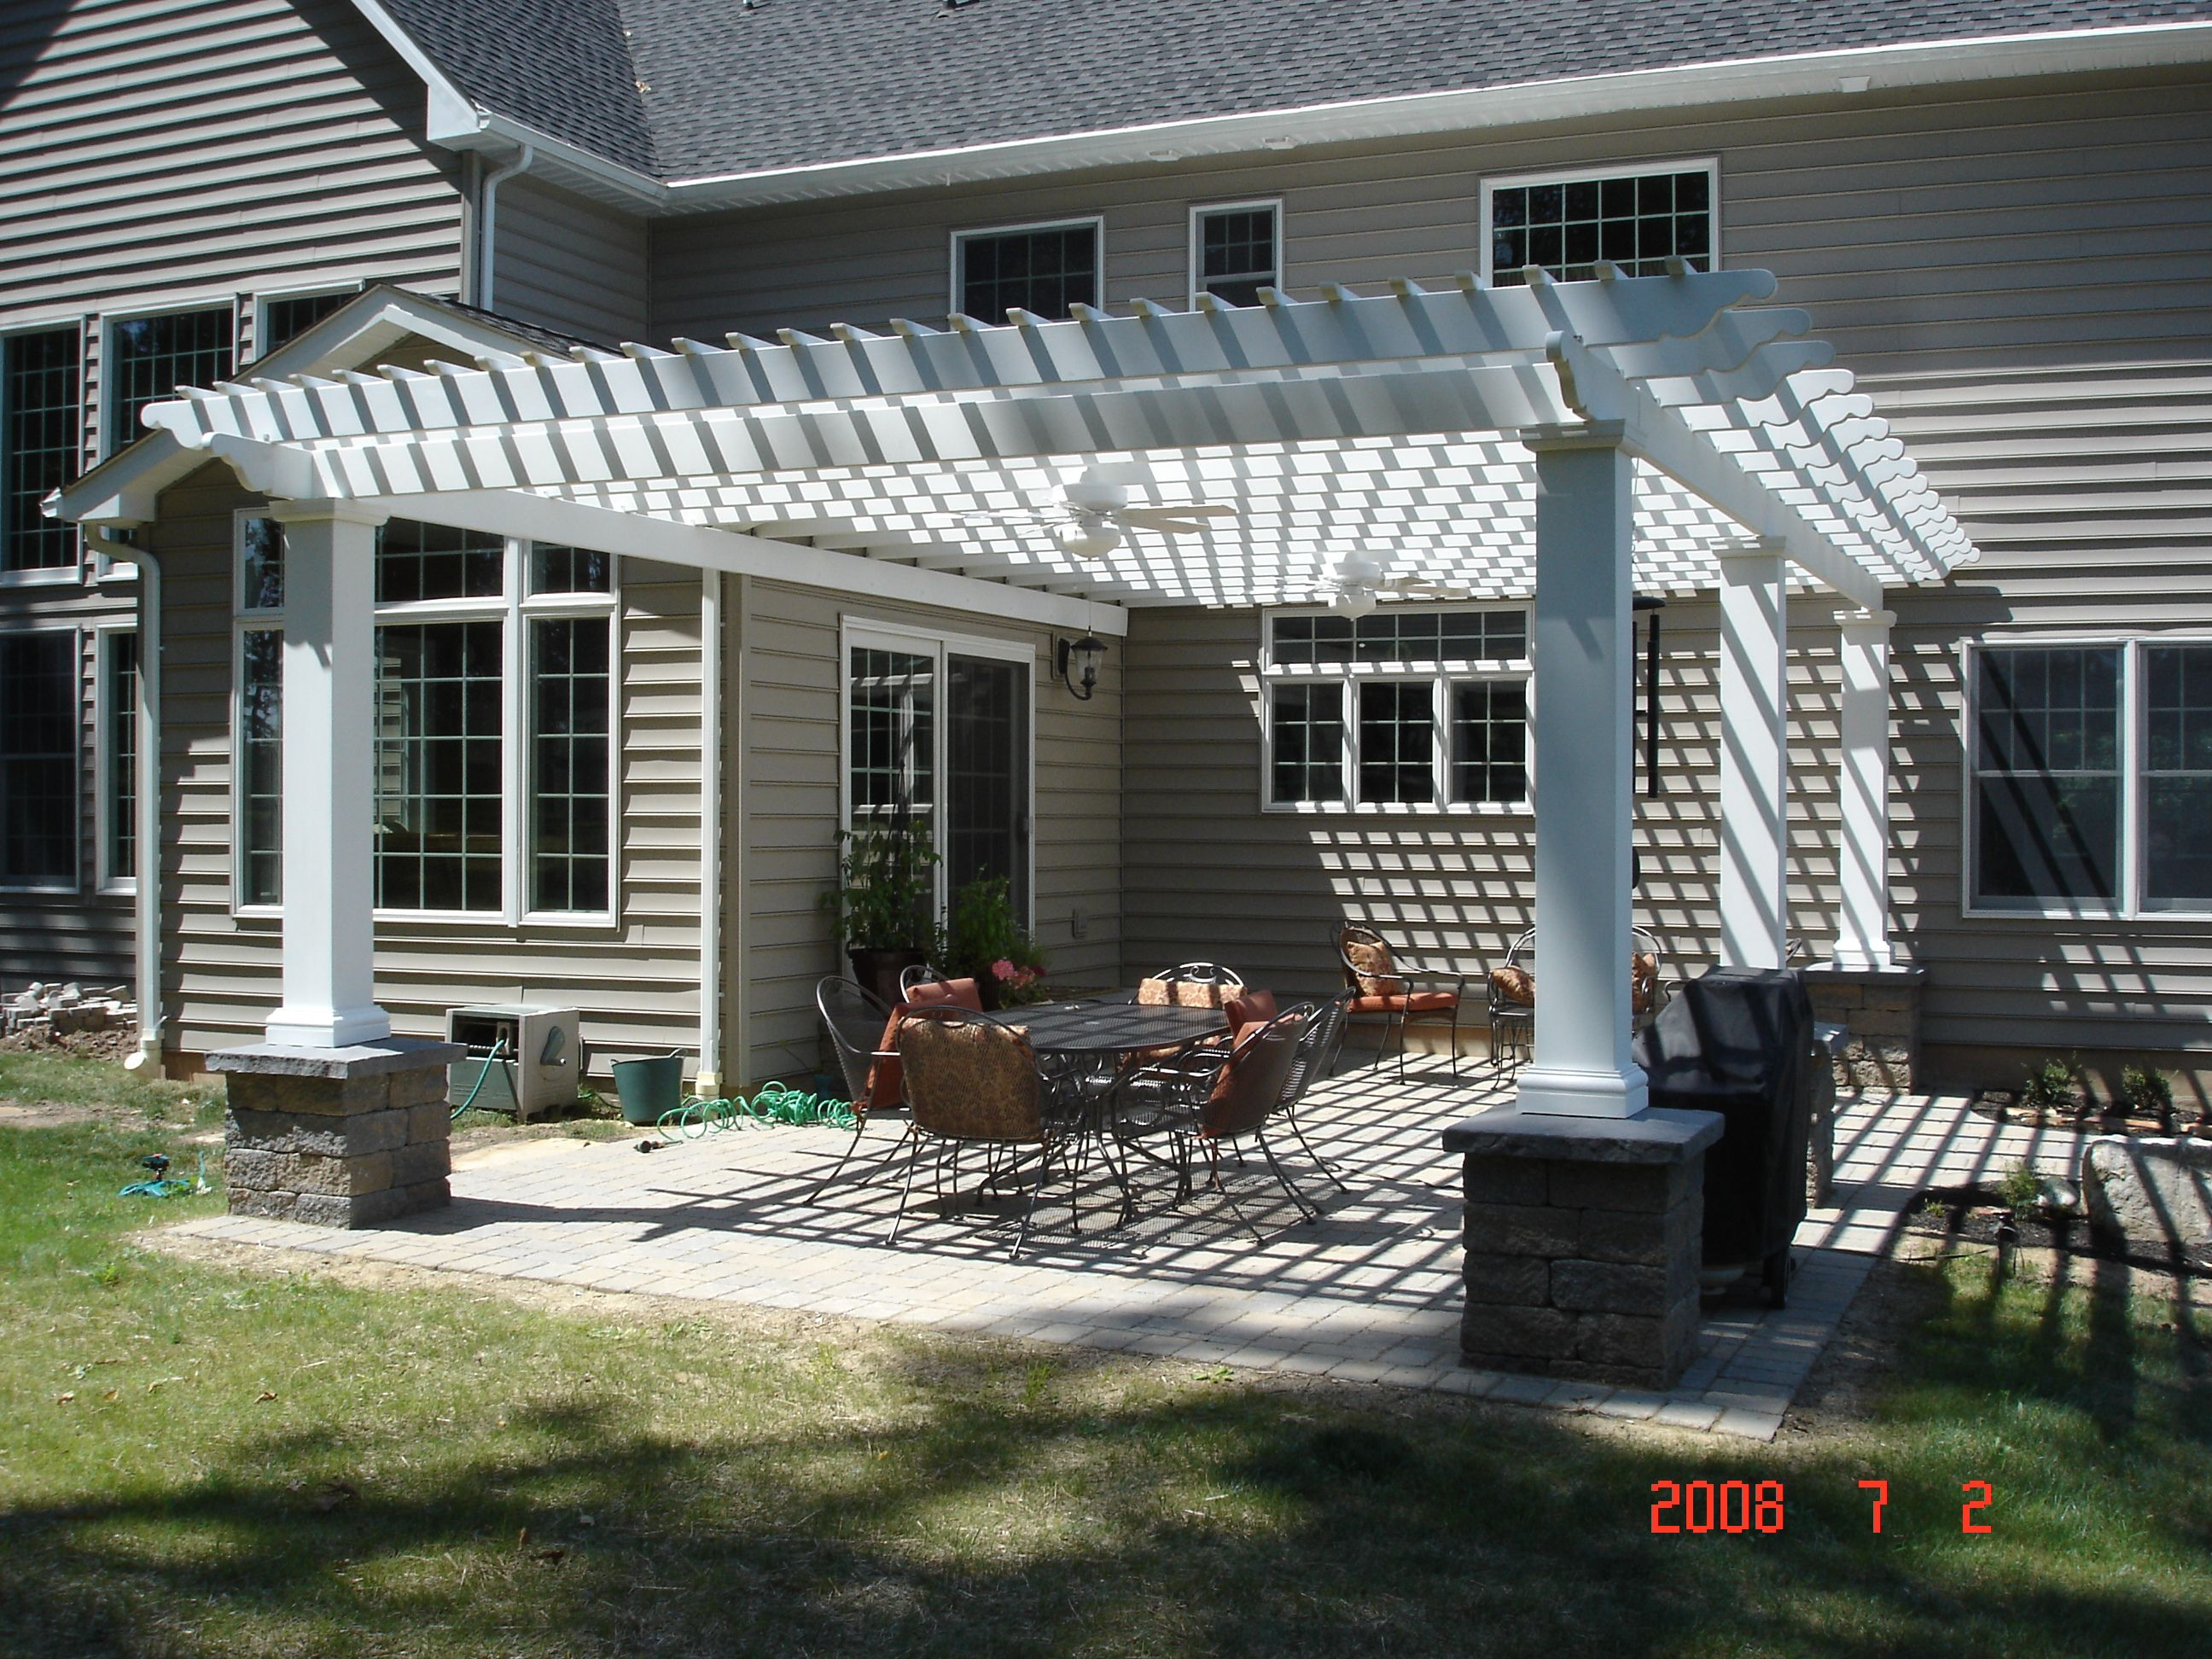 Pergola Designs For Patios Craftsman Pergola Patio Designs Pergola Designs  Attached To House Pergolas And Panache